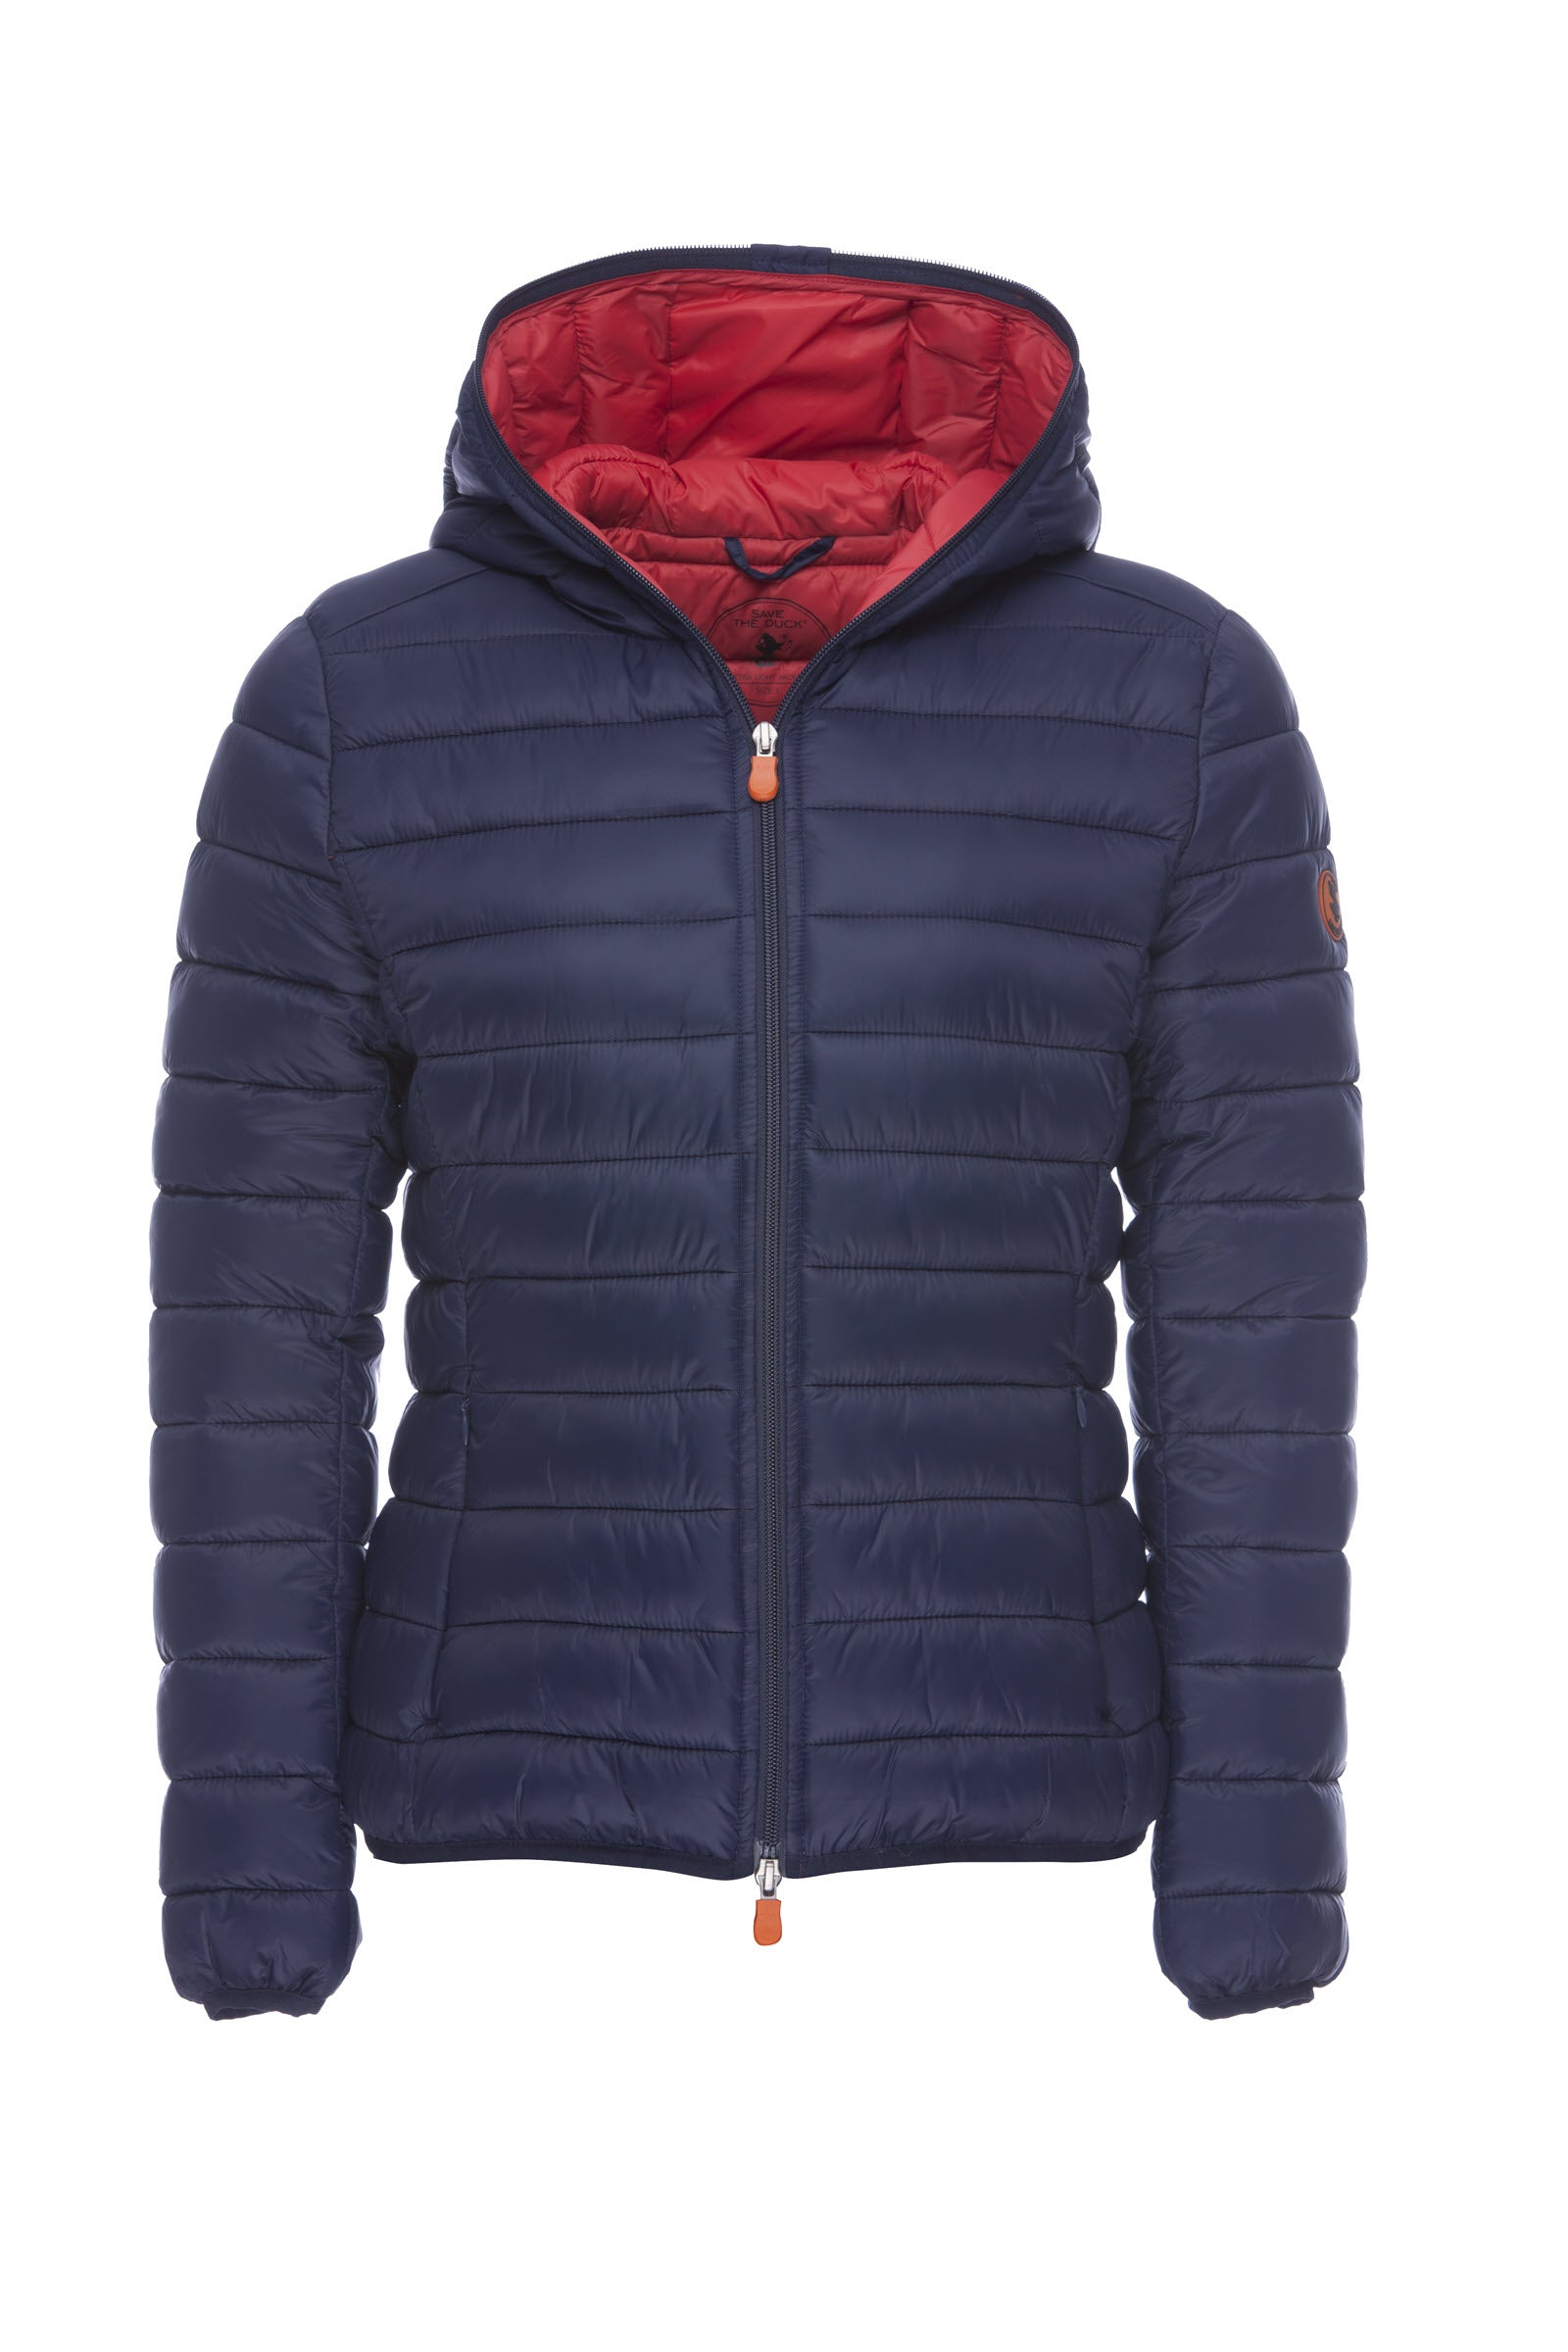 11fbcbfca596 Save The Duck Women s Jacket in Navy Blue - Save the Duck